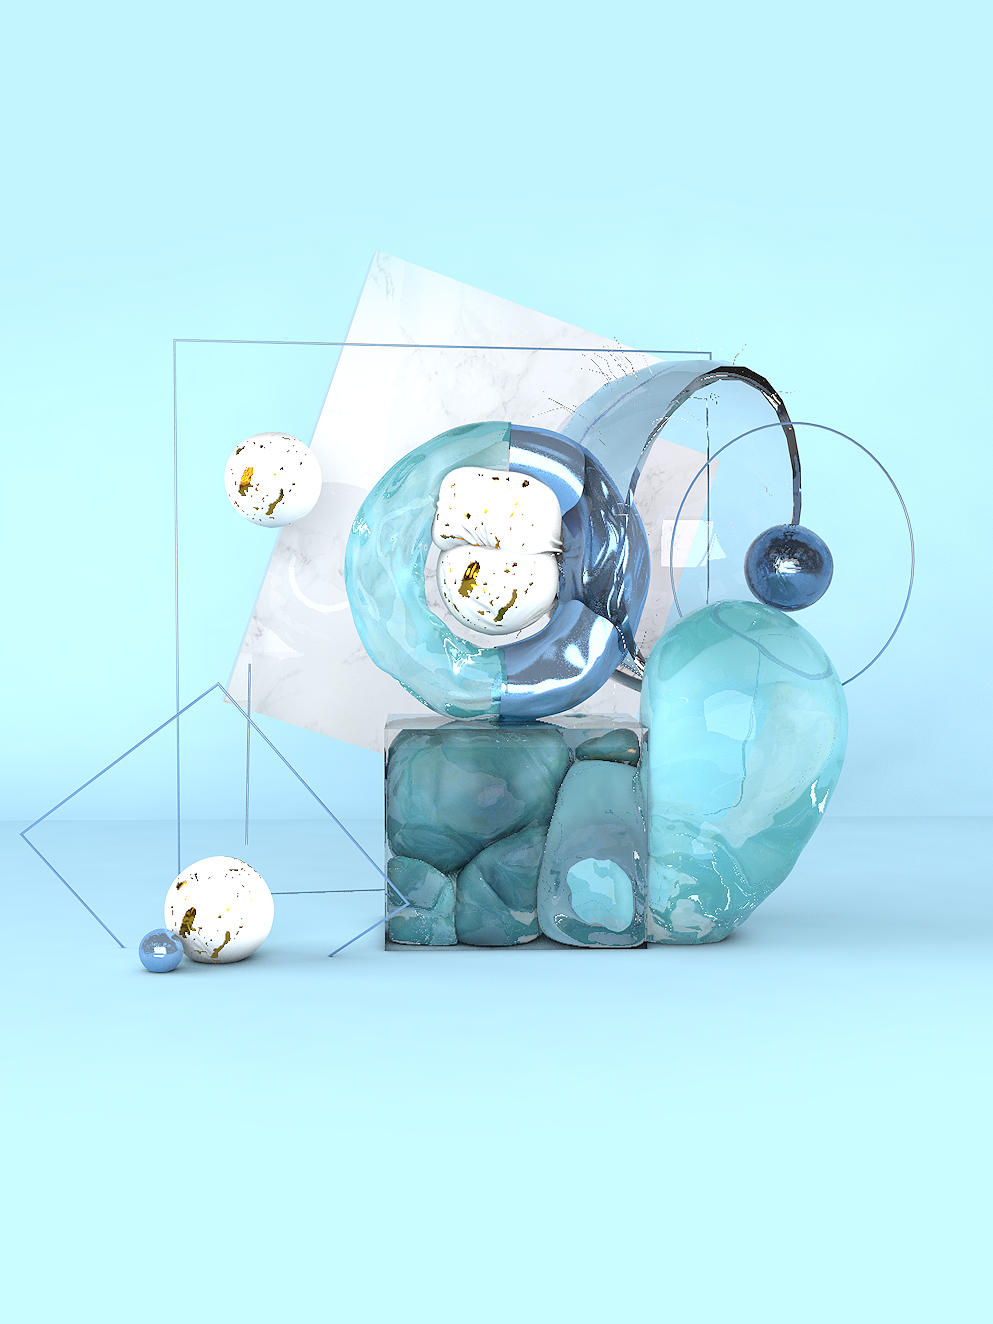 Still life composition in 3D by brbrgraphics